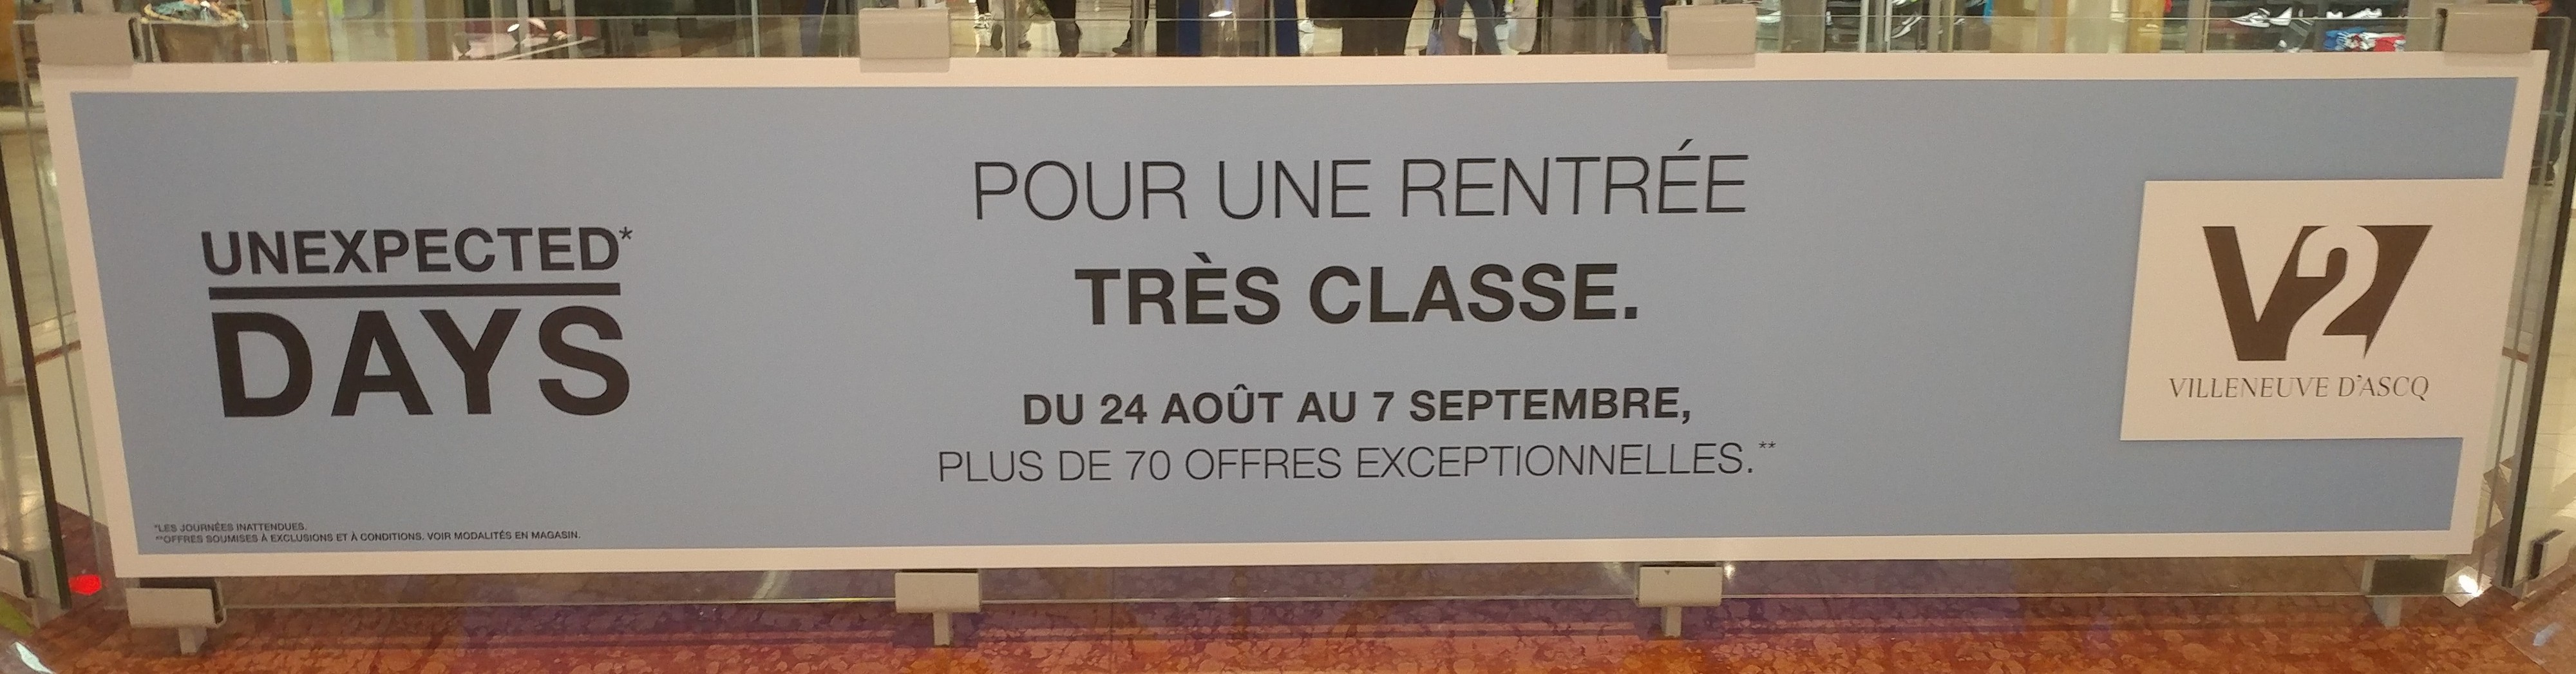 """Banner in shopping mall with slogan in English: """"Unexpected Days."""" Then, in French: """"Pour une rentrée très classe."""""""